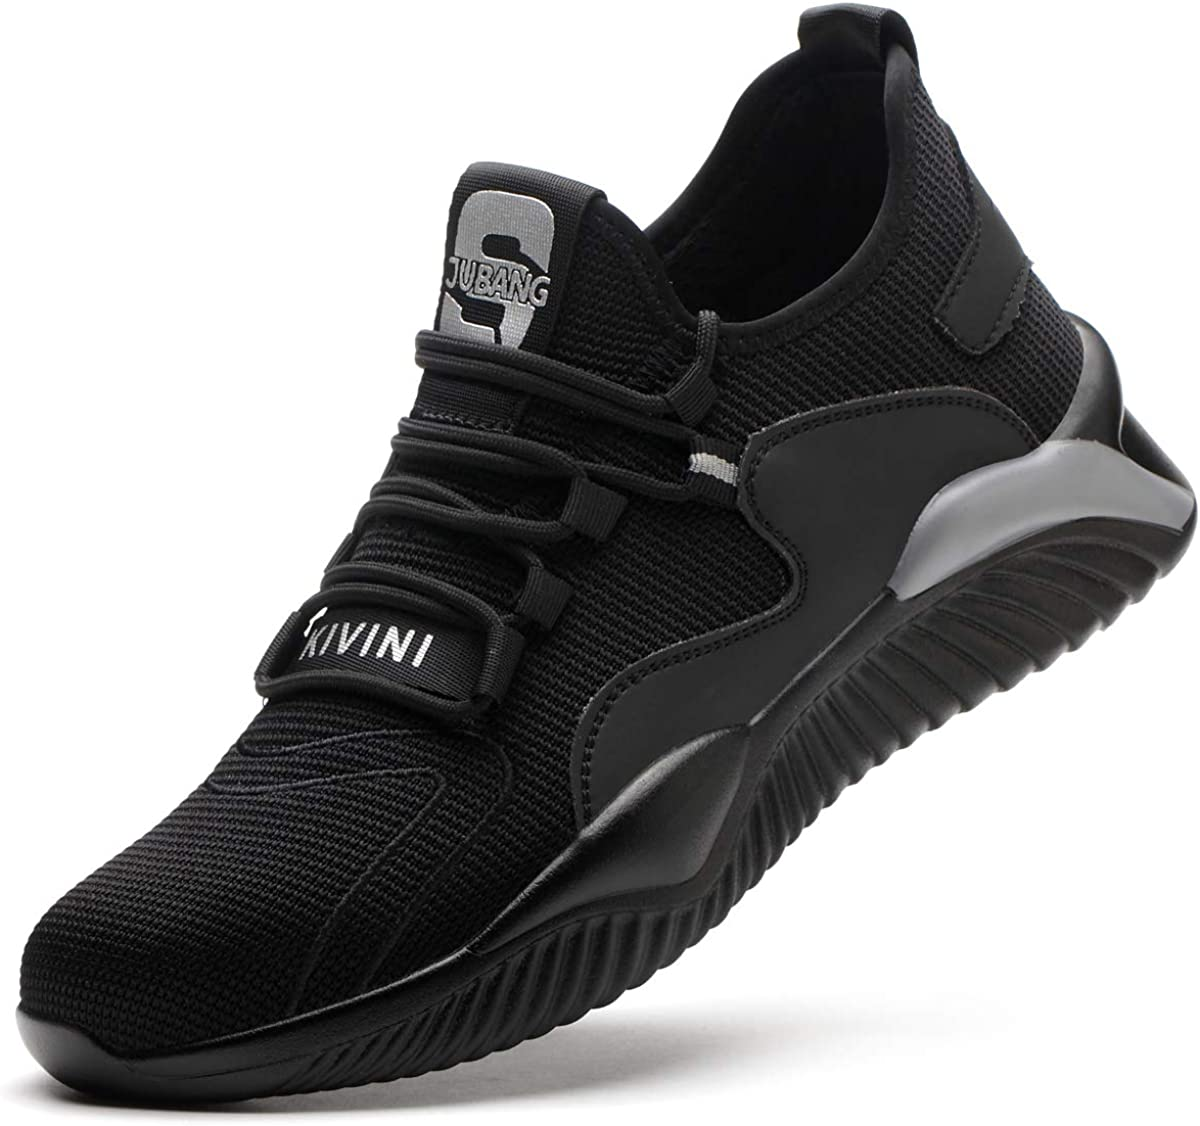 Navi Steel Toe Shoes for Women Lightweight Safet Men Comfortable New products world's highest quality price popular